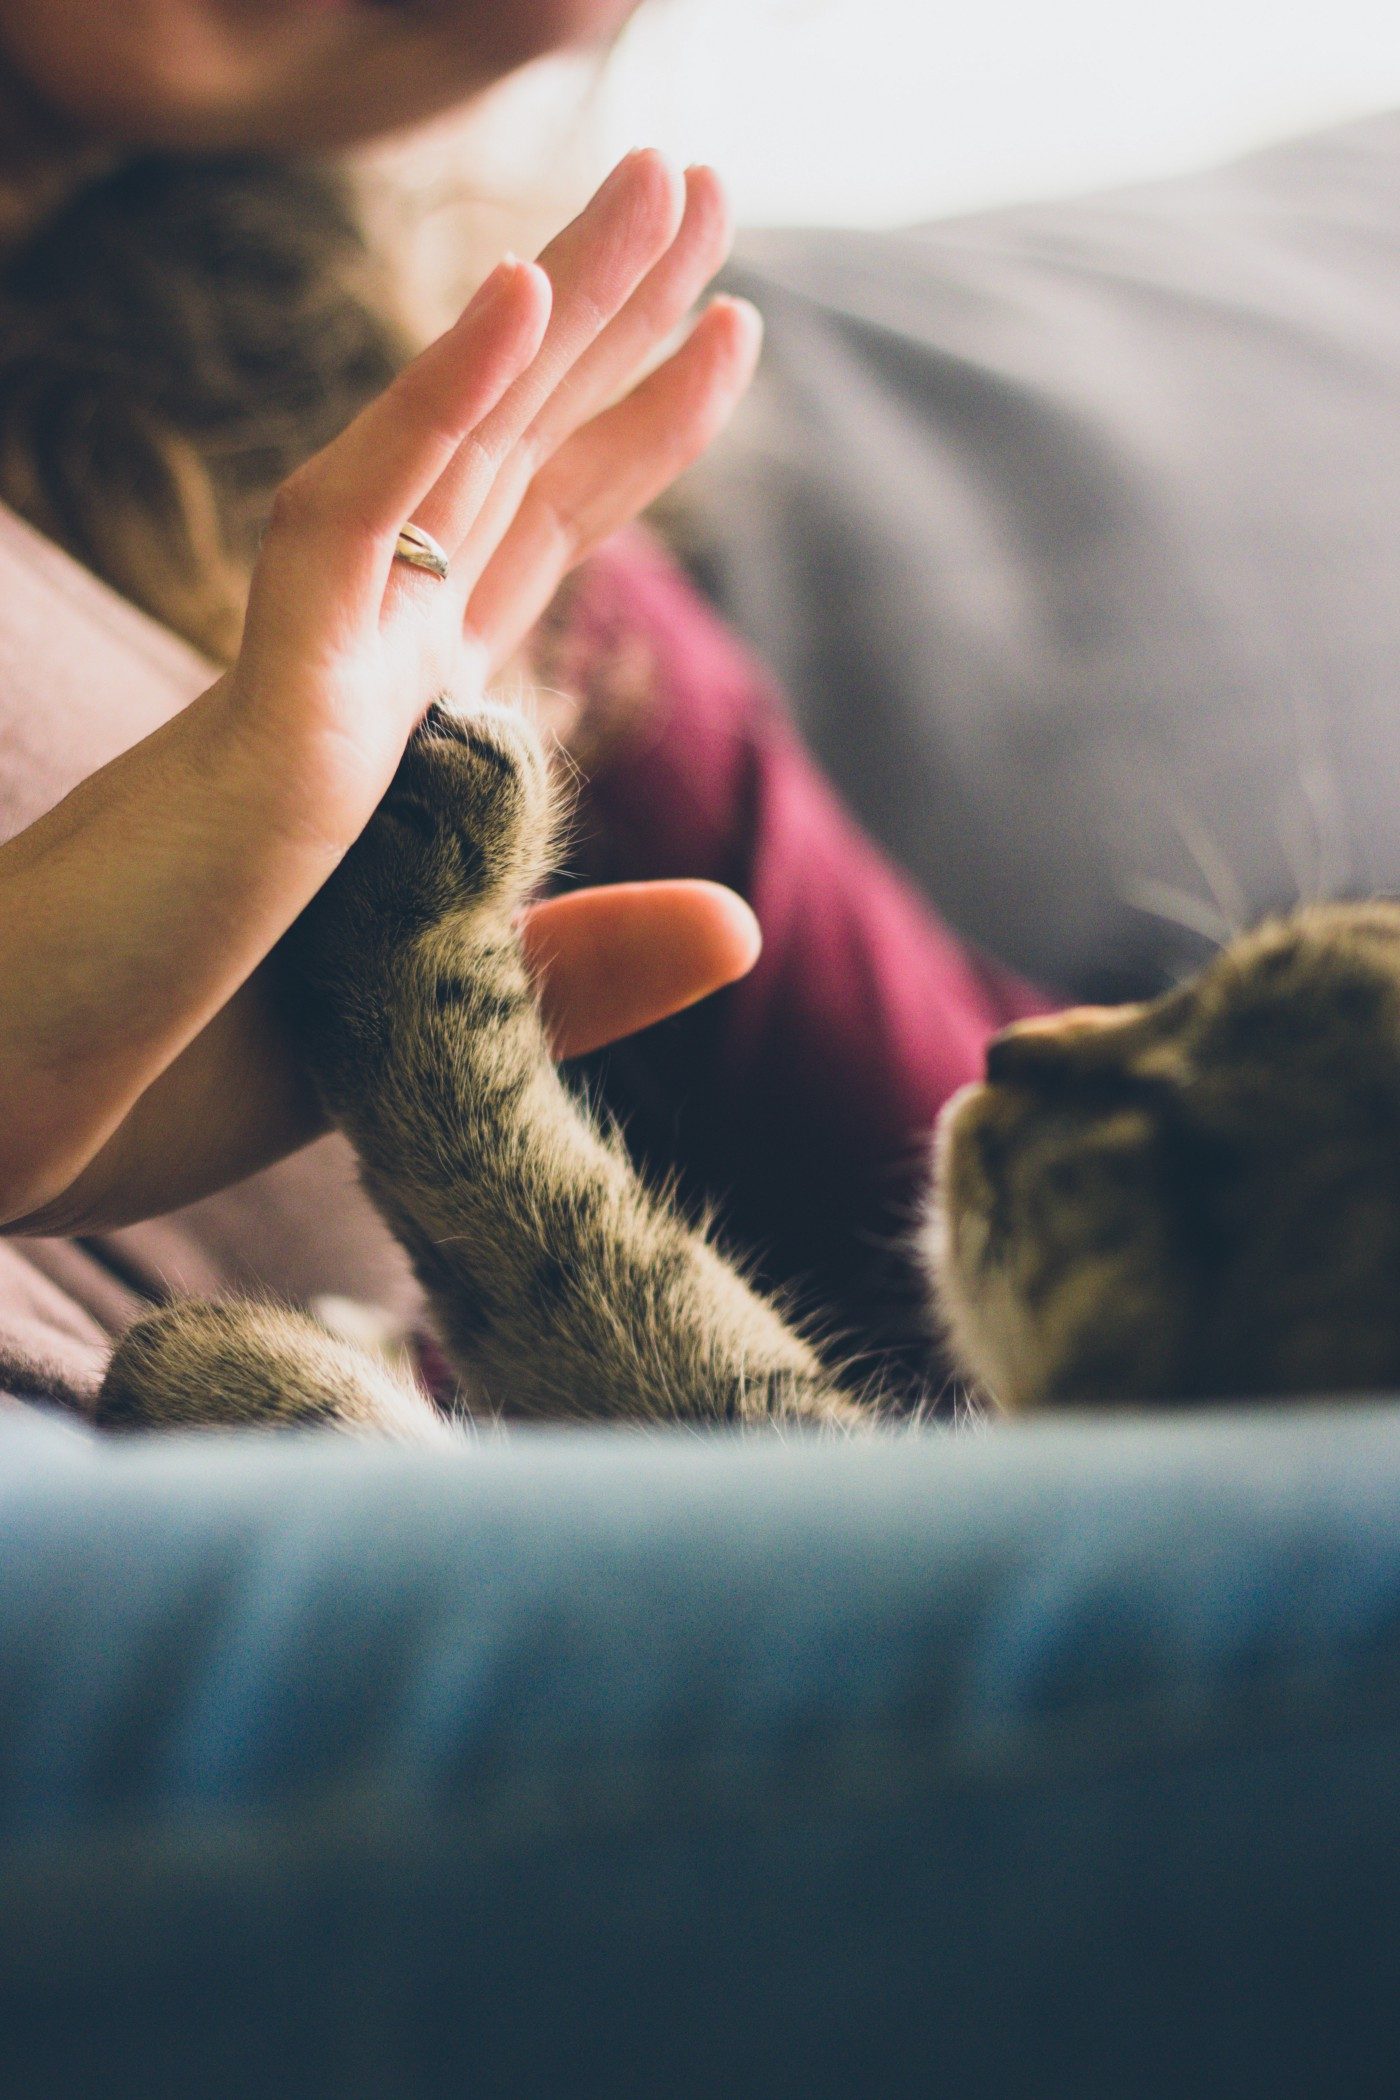 A person touching a cat's paw with their palm, in a gesture of tenderness.